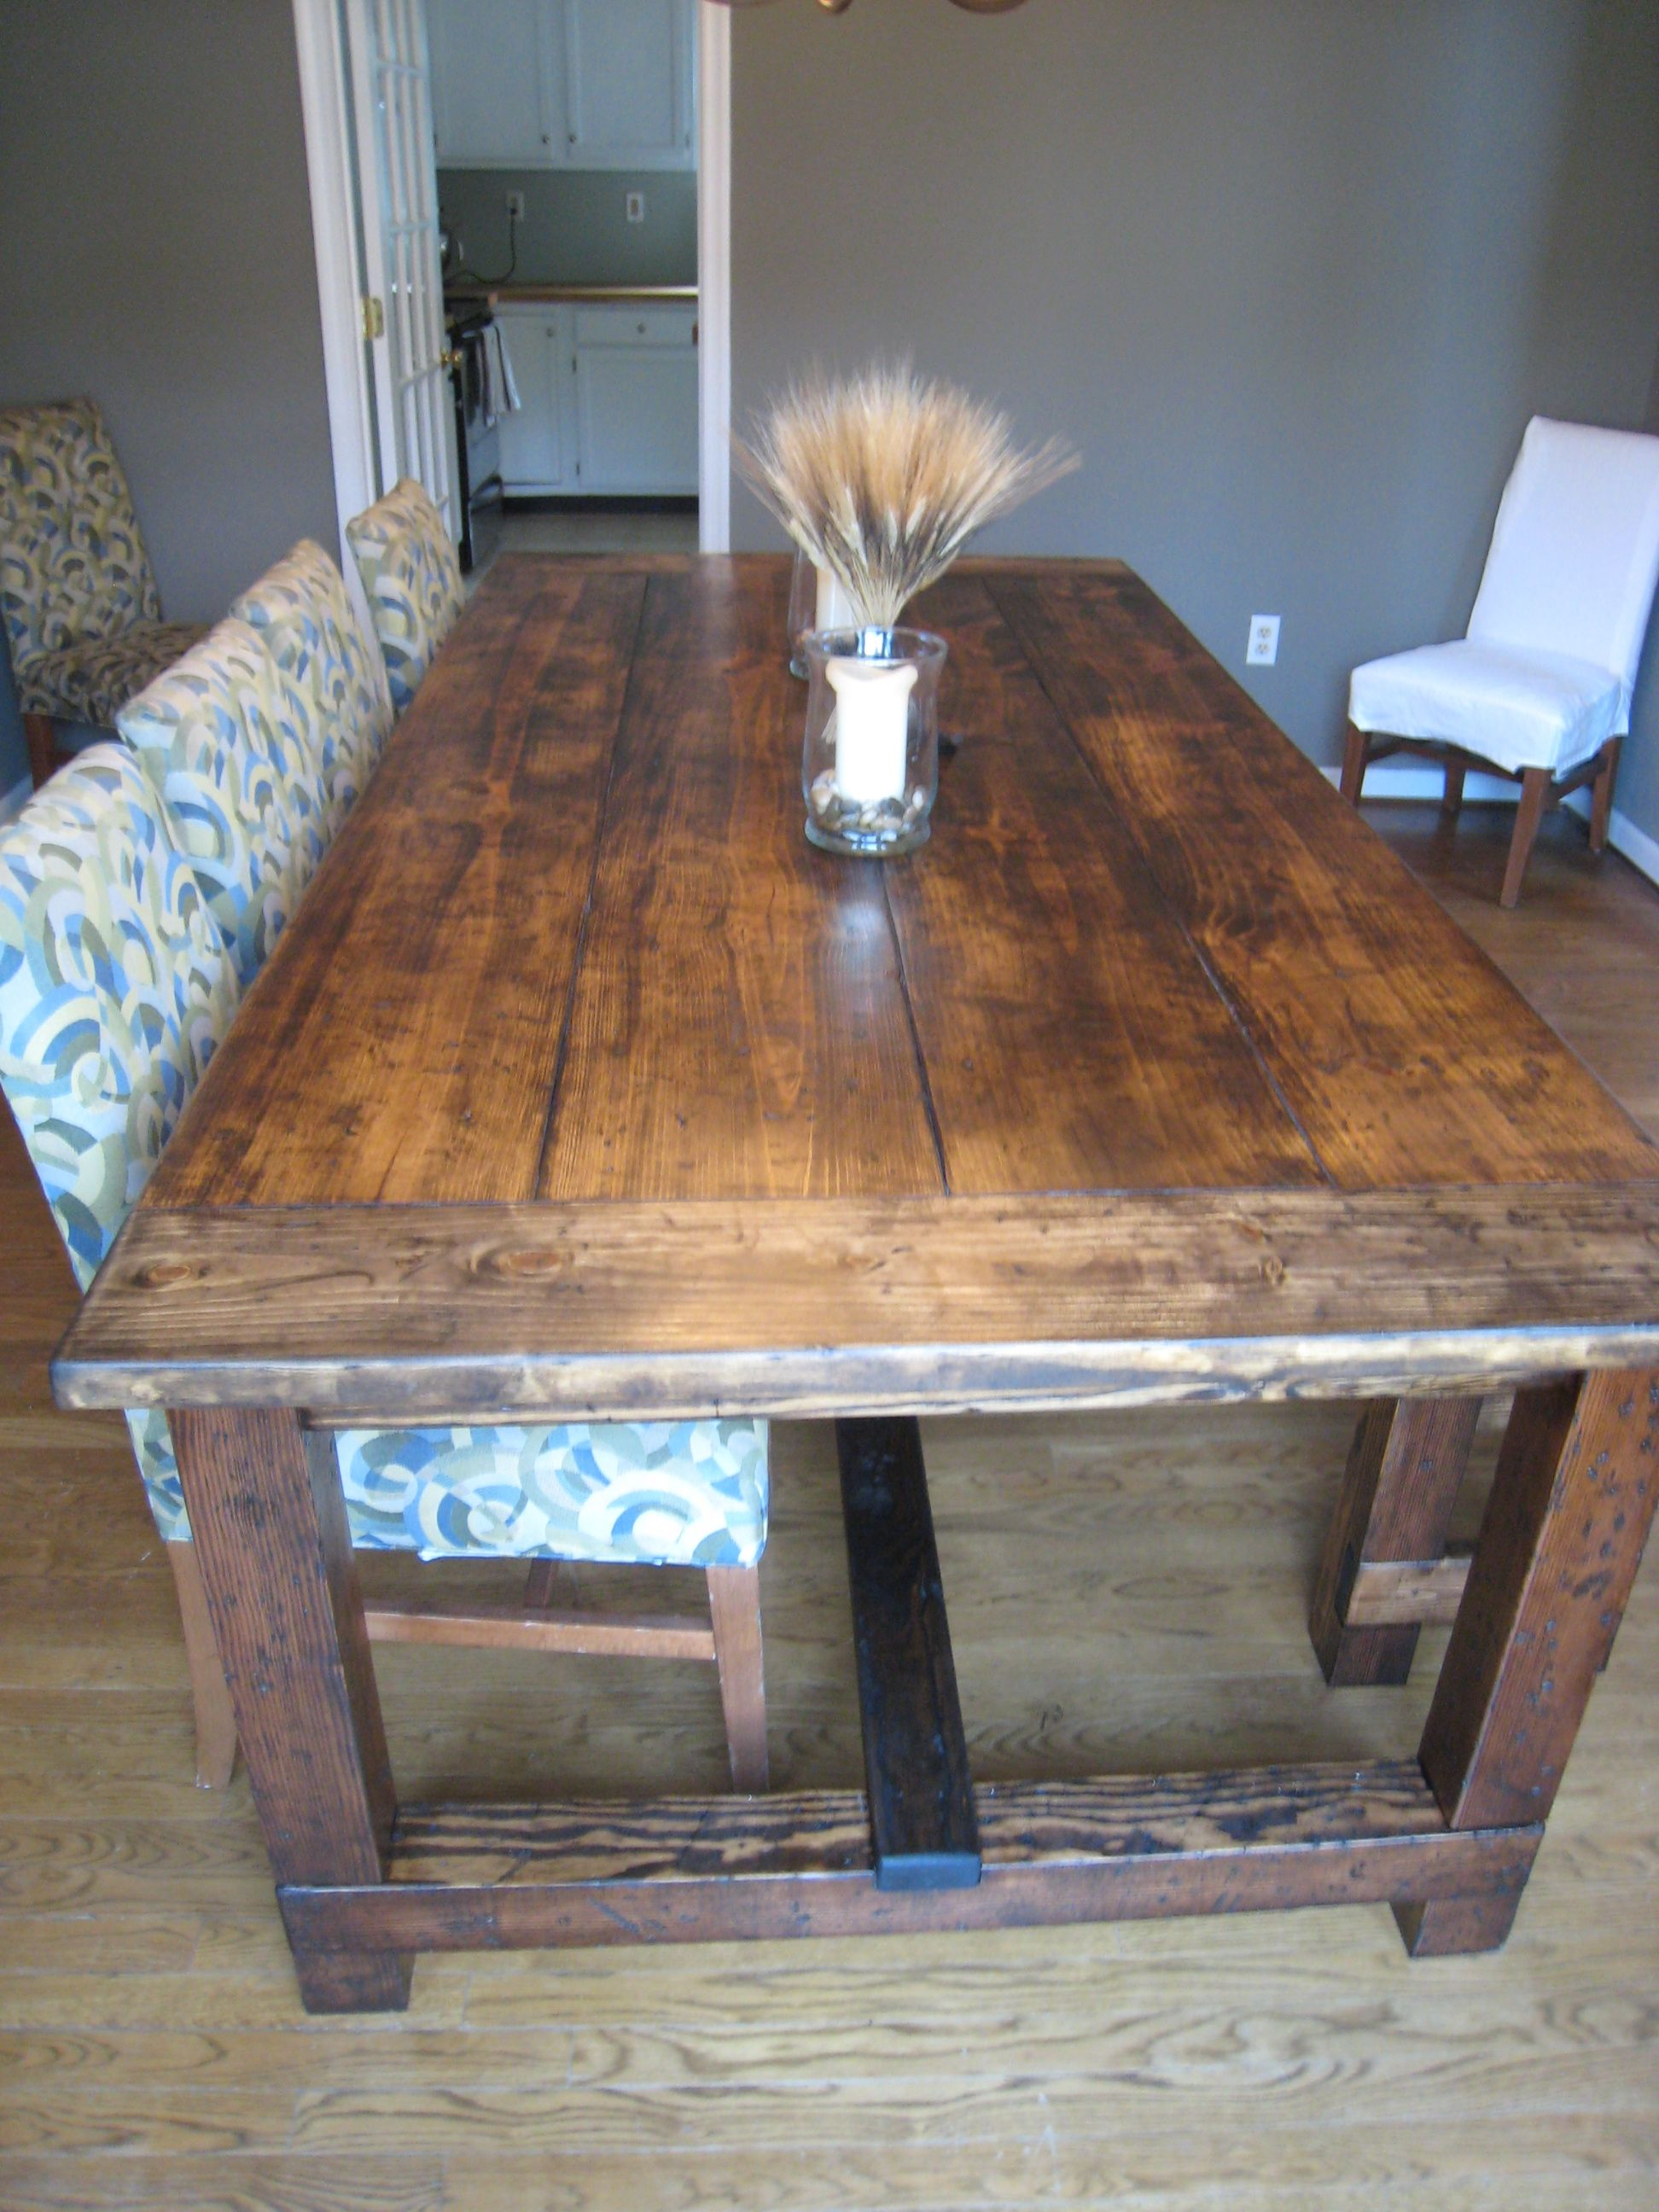 Diy Farm Table With Exact How To Directions In My Future I Fair Dining Room Tables Plans Design Inspiration